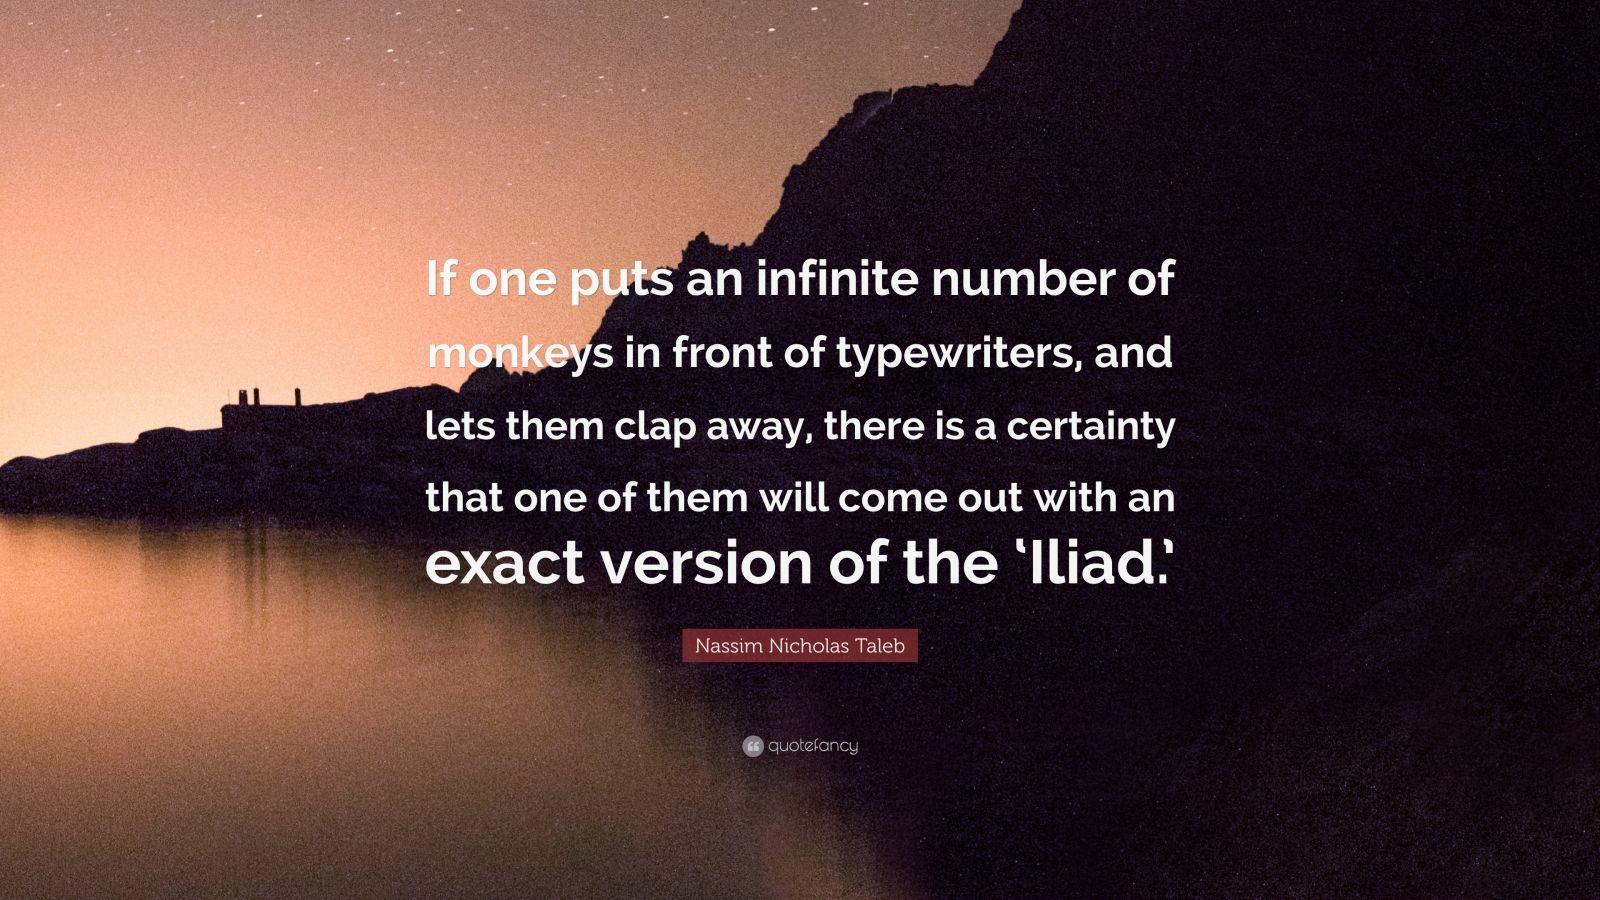 """Nassim Nicholas Taleb Quote: """"If one puts an infinite number of monkeys in front of typewriters, and lets them clap away, there is a certainty that one of them will come out with an exact version of the 'Iliad.'"""""""